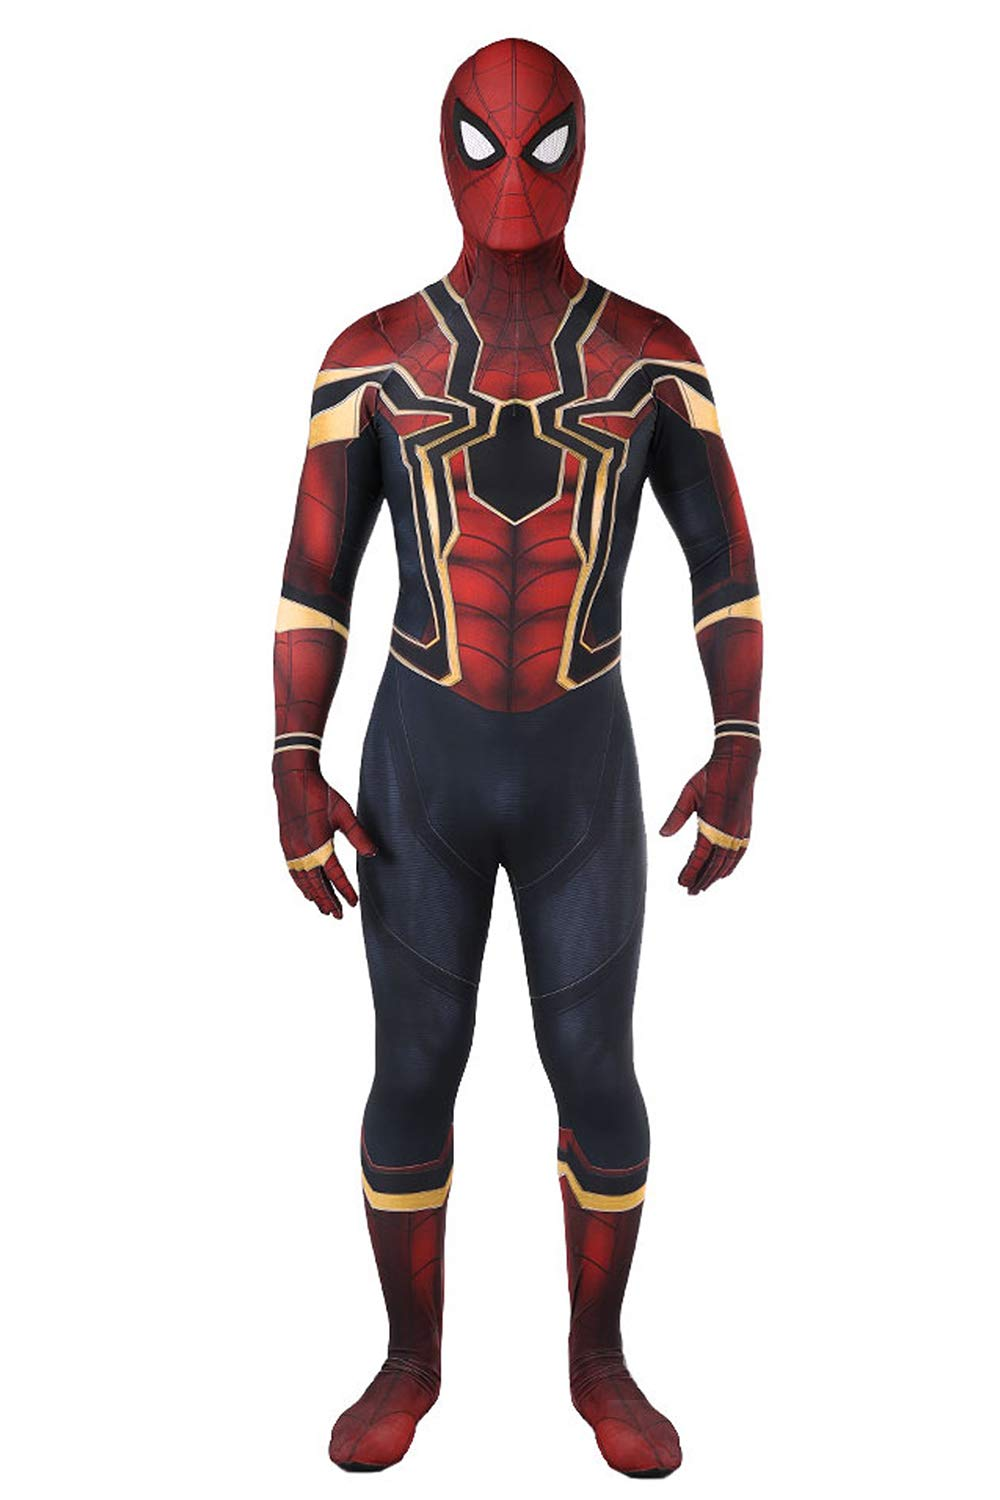 - 61khWc88mIL - Crazycos Unisex Adult Kids Lycra Spandex Zentai 3D Style Halloween Cosplay Costumes